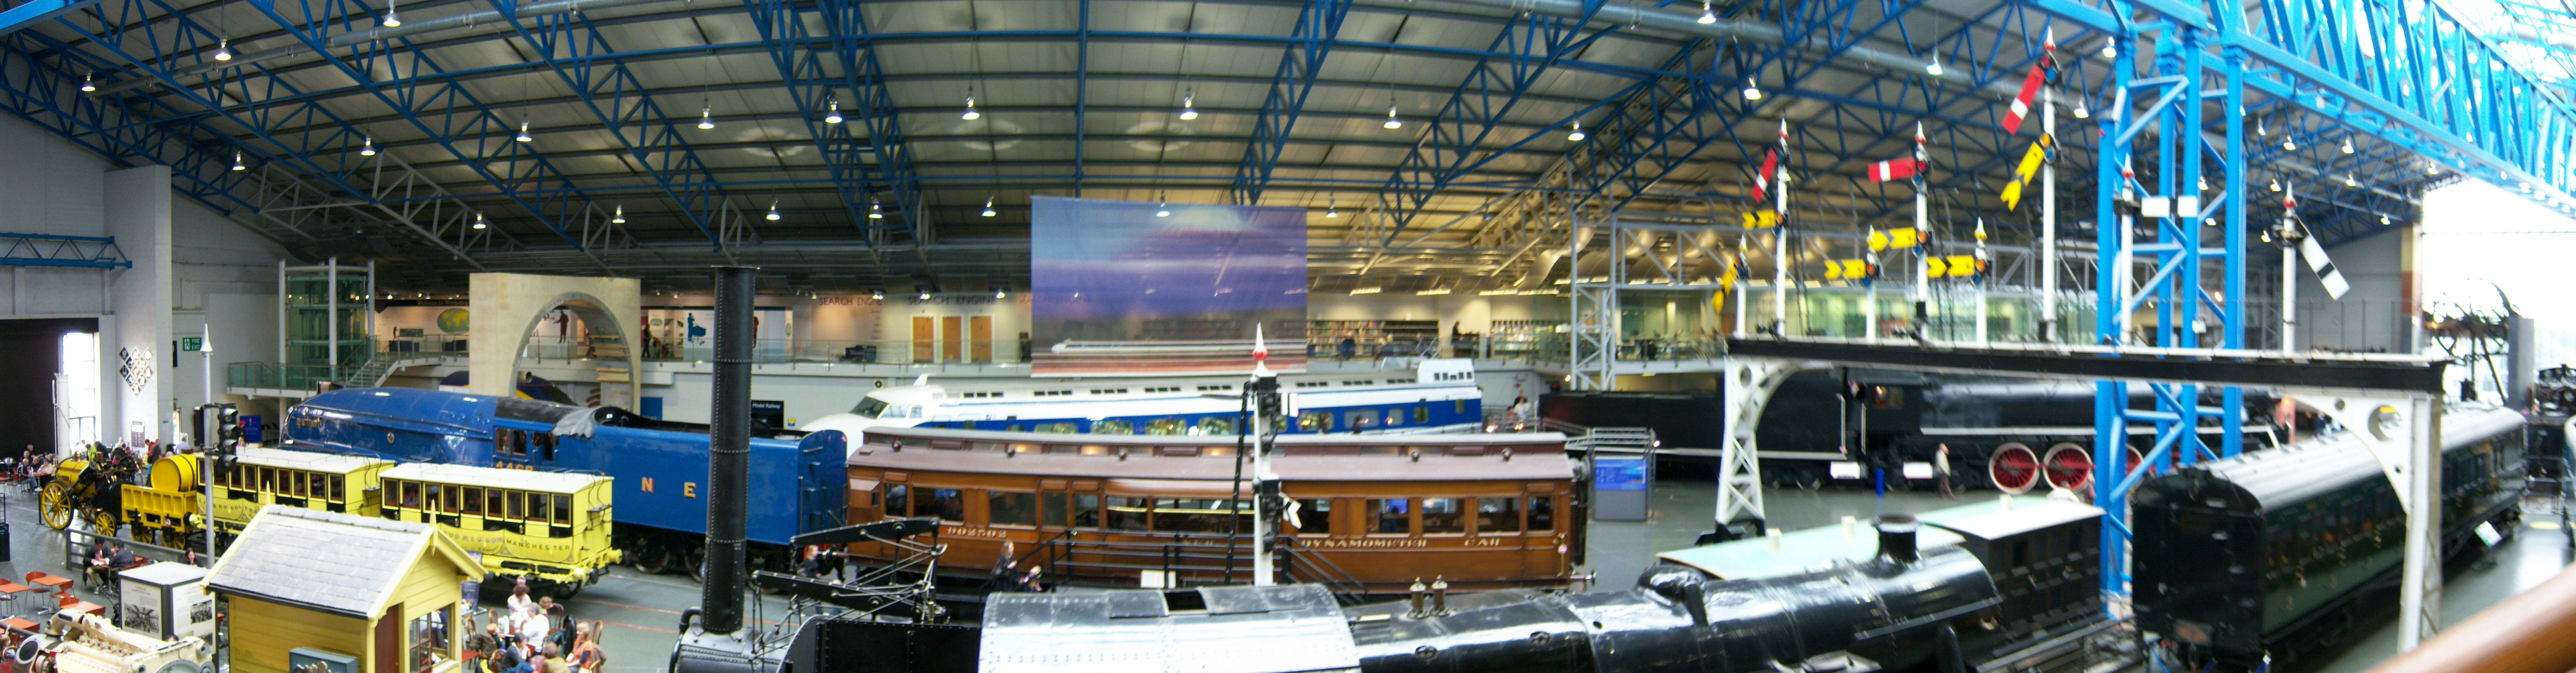 File:National Railway Museum York 15 March 2009 Great Hall ...